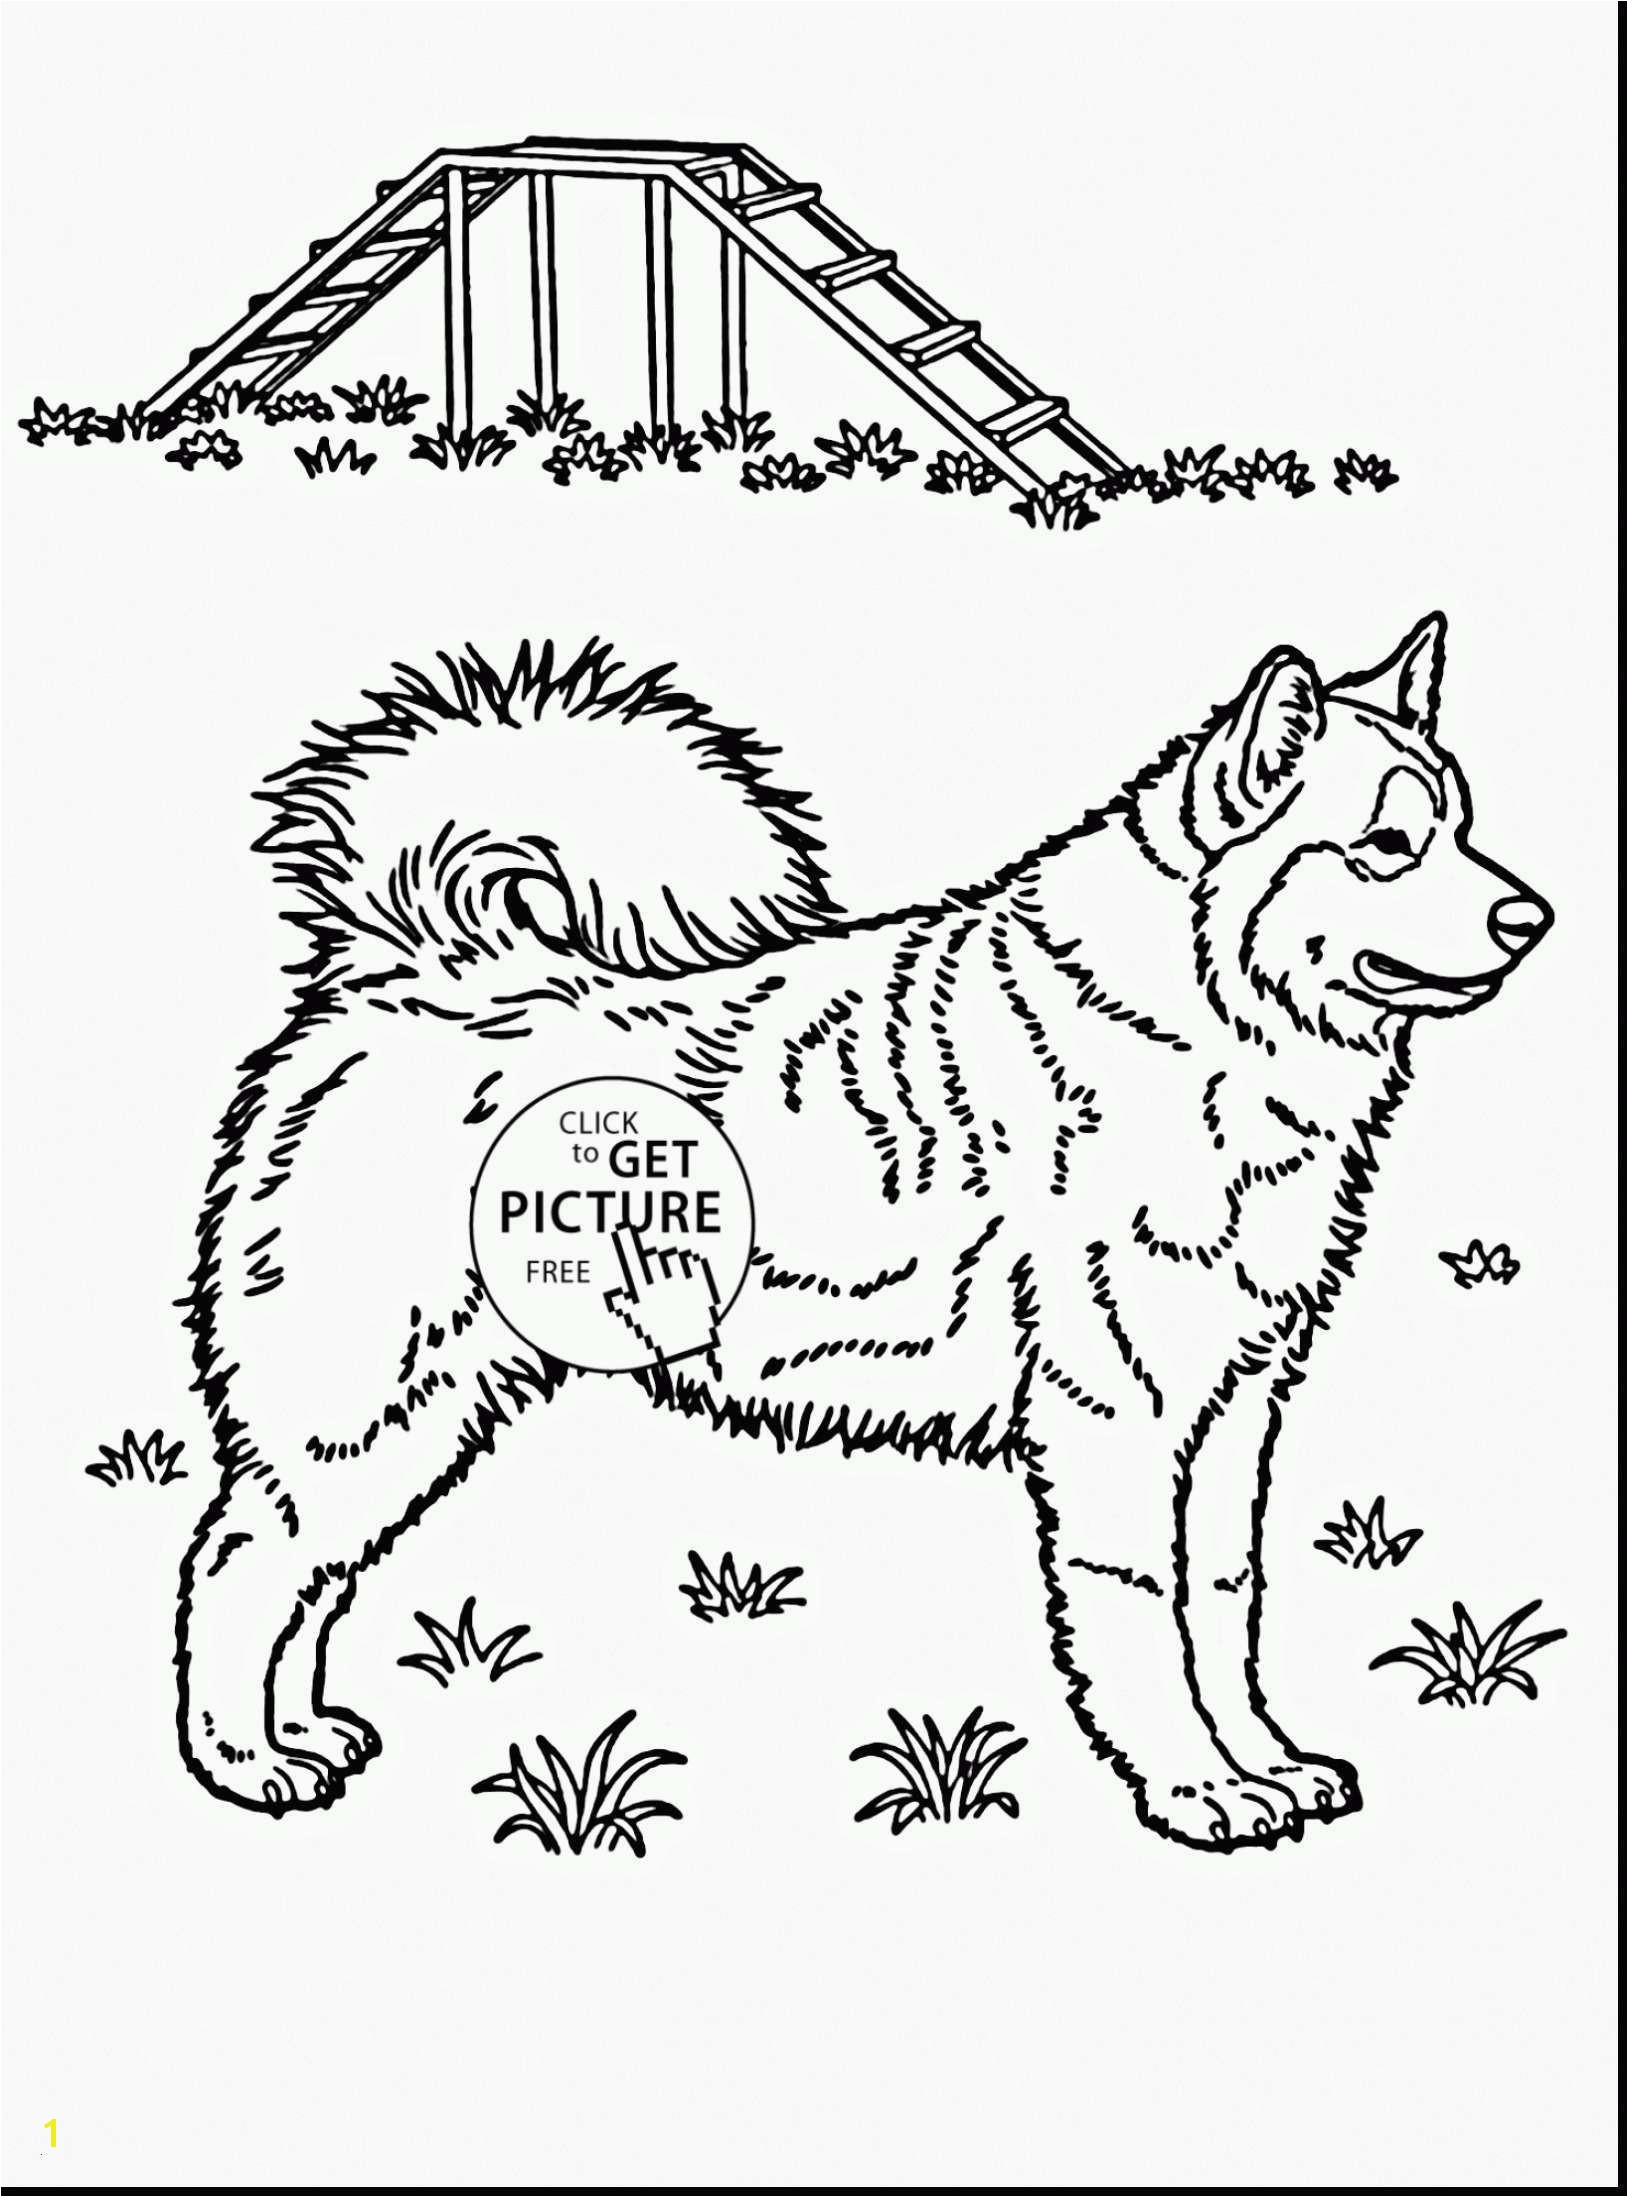 Husky Coloring Pages Elegant Husky Coloring Pages Beautiful Husky Coloring 0d Free Coloring Pages Drawing Indian